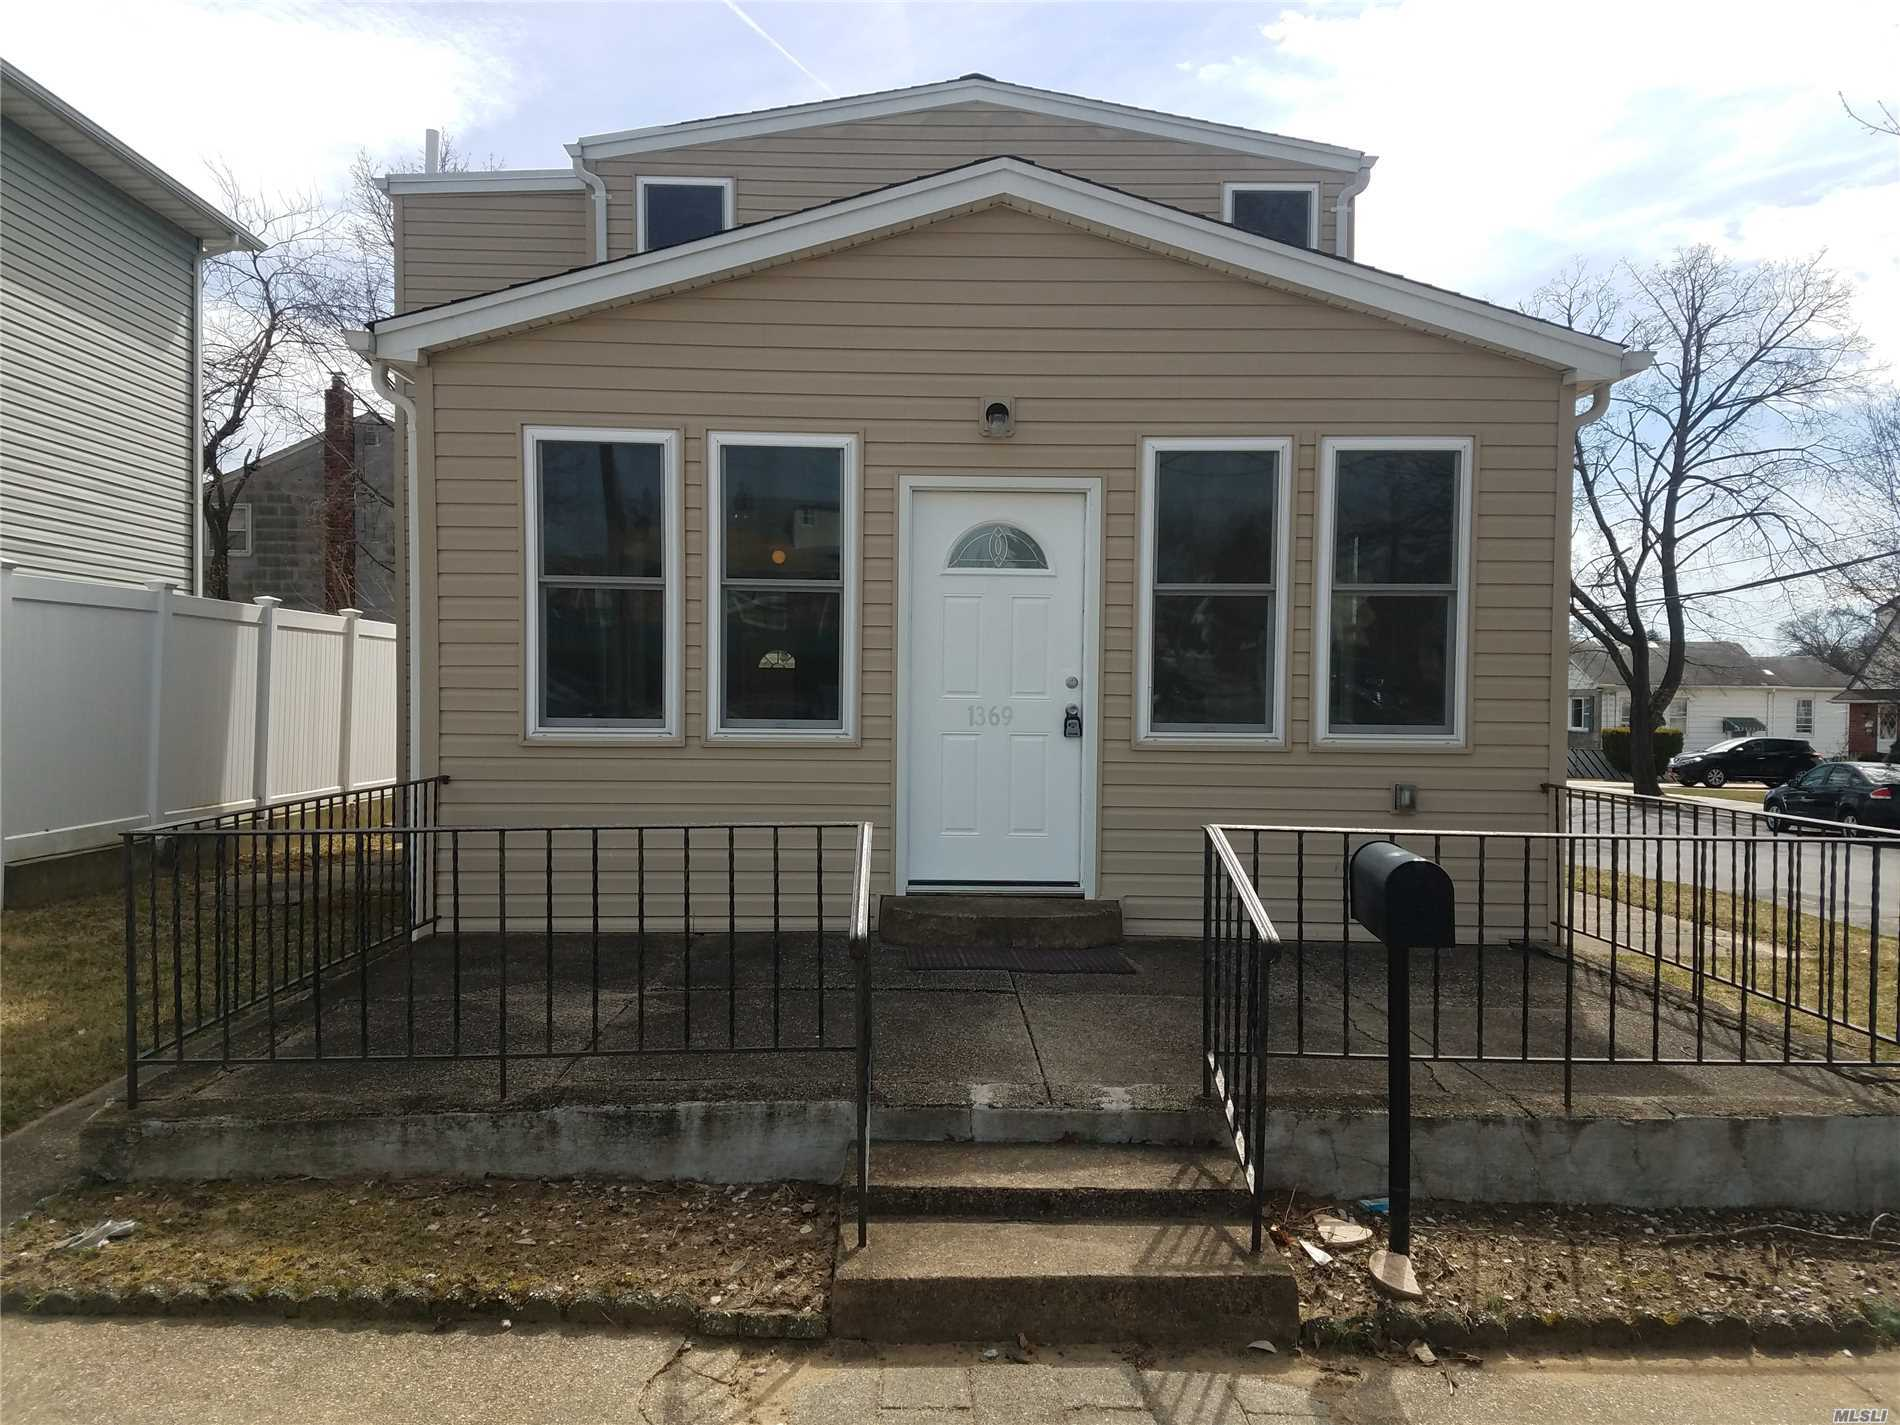 Fully Renovated Colonial House Sets On A Quiet Block. . It Features 3 Bedrooms, 2 New Full Bath, New Kitchen, Large Living Room. New Washer And Dryers, Full Basement With Plenty Of Storage. Close To Transportation. The Taxes Do Not Reflect The Star Program. Must See.